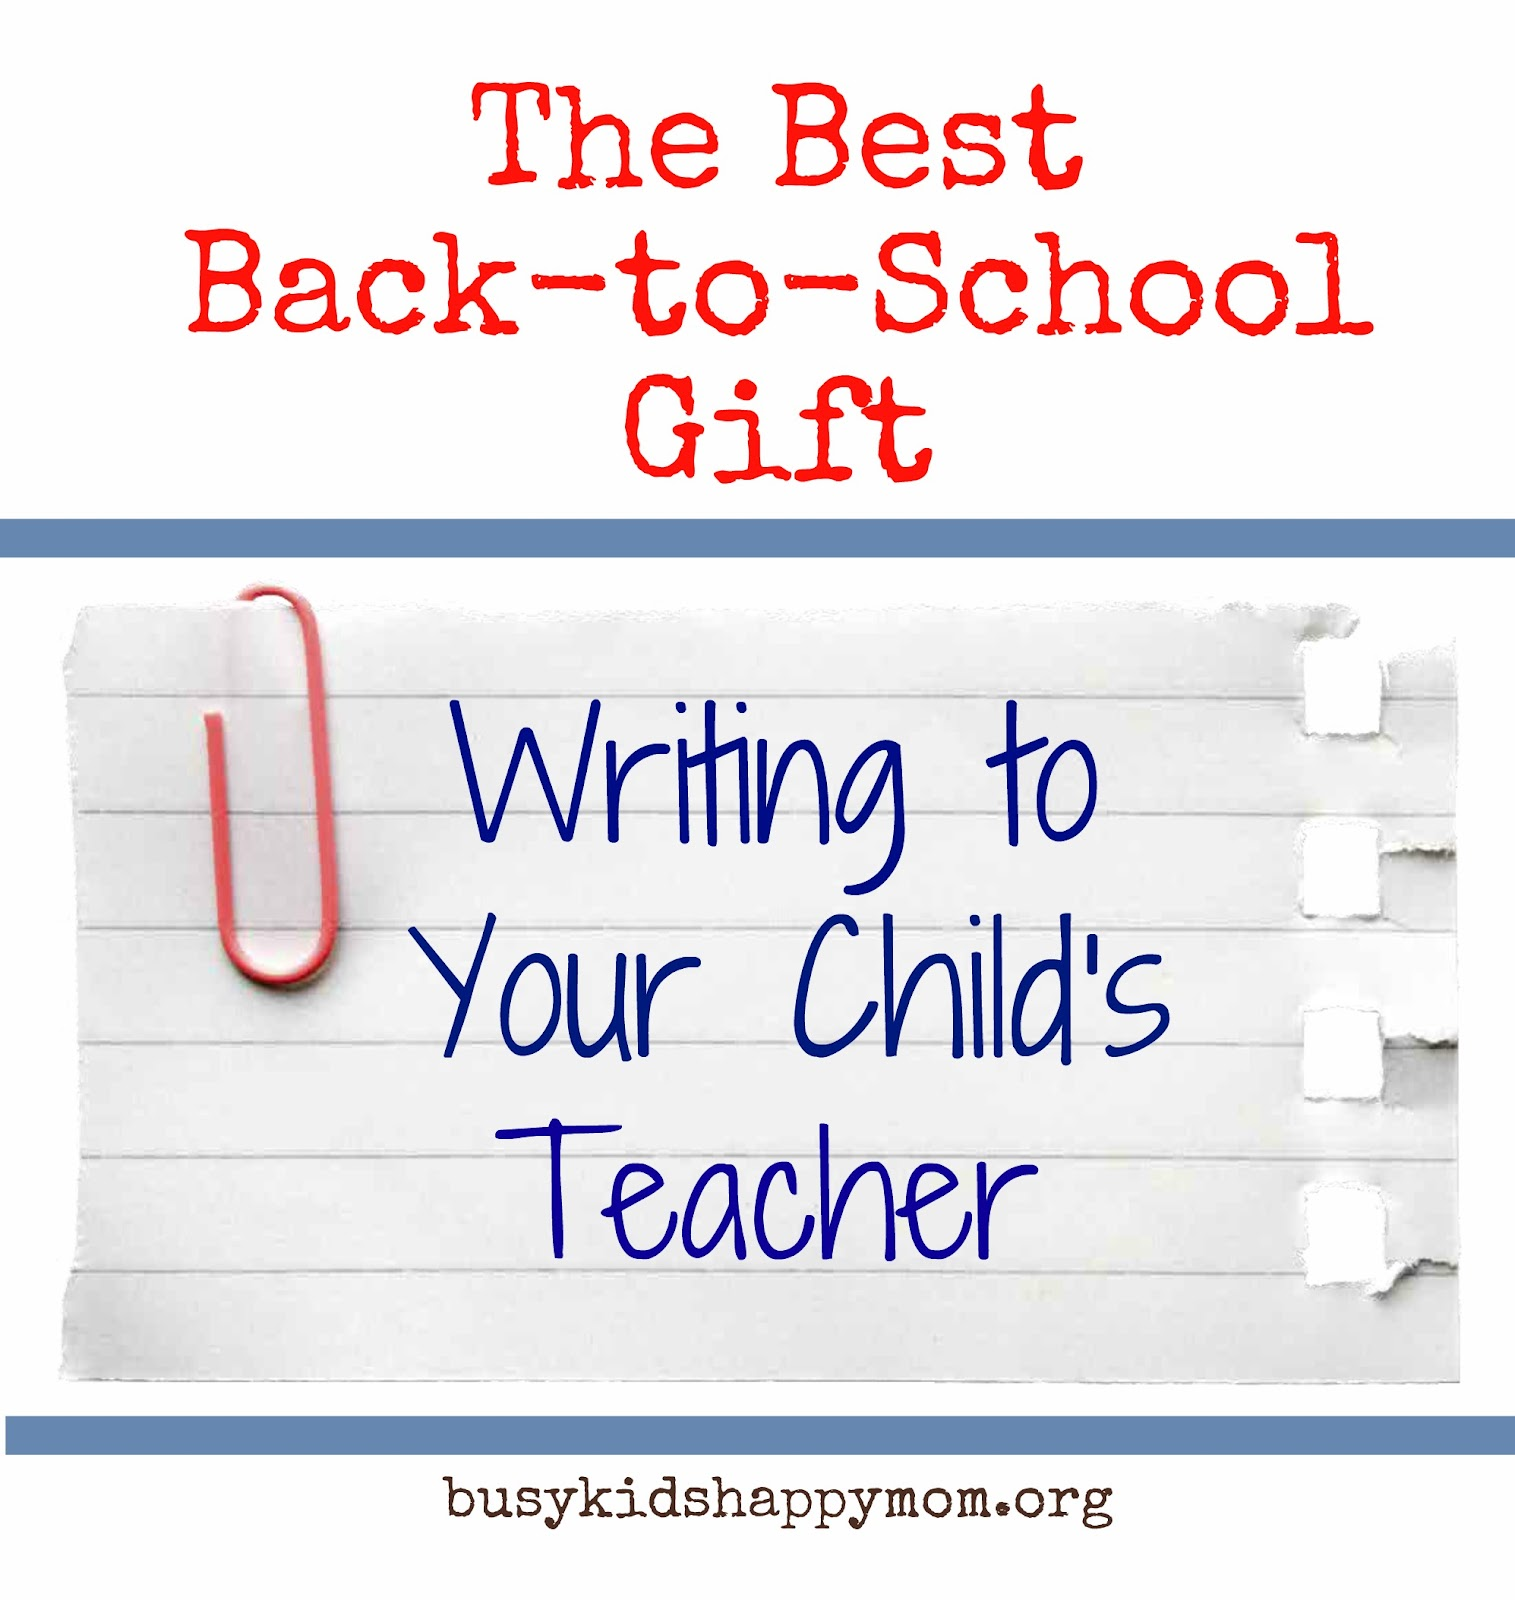 essay about your teacher Reflective essay: a good teacher standard 1: development, learning, and motivation-a teacher has his or her own style or way of motivating their students.